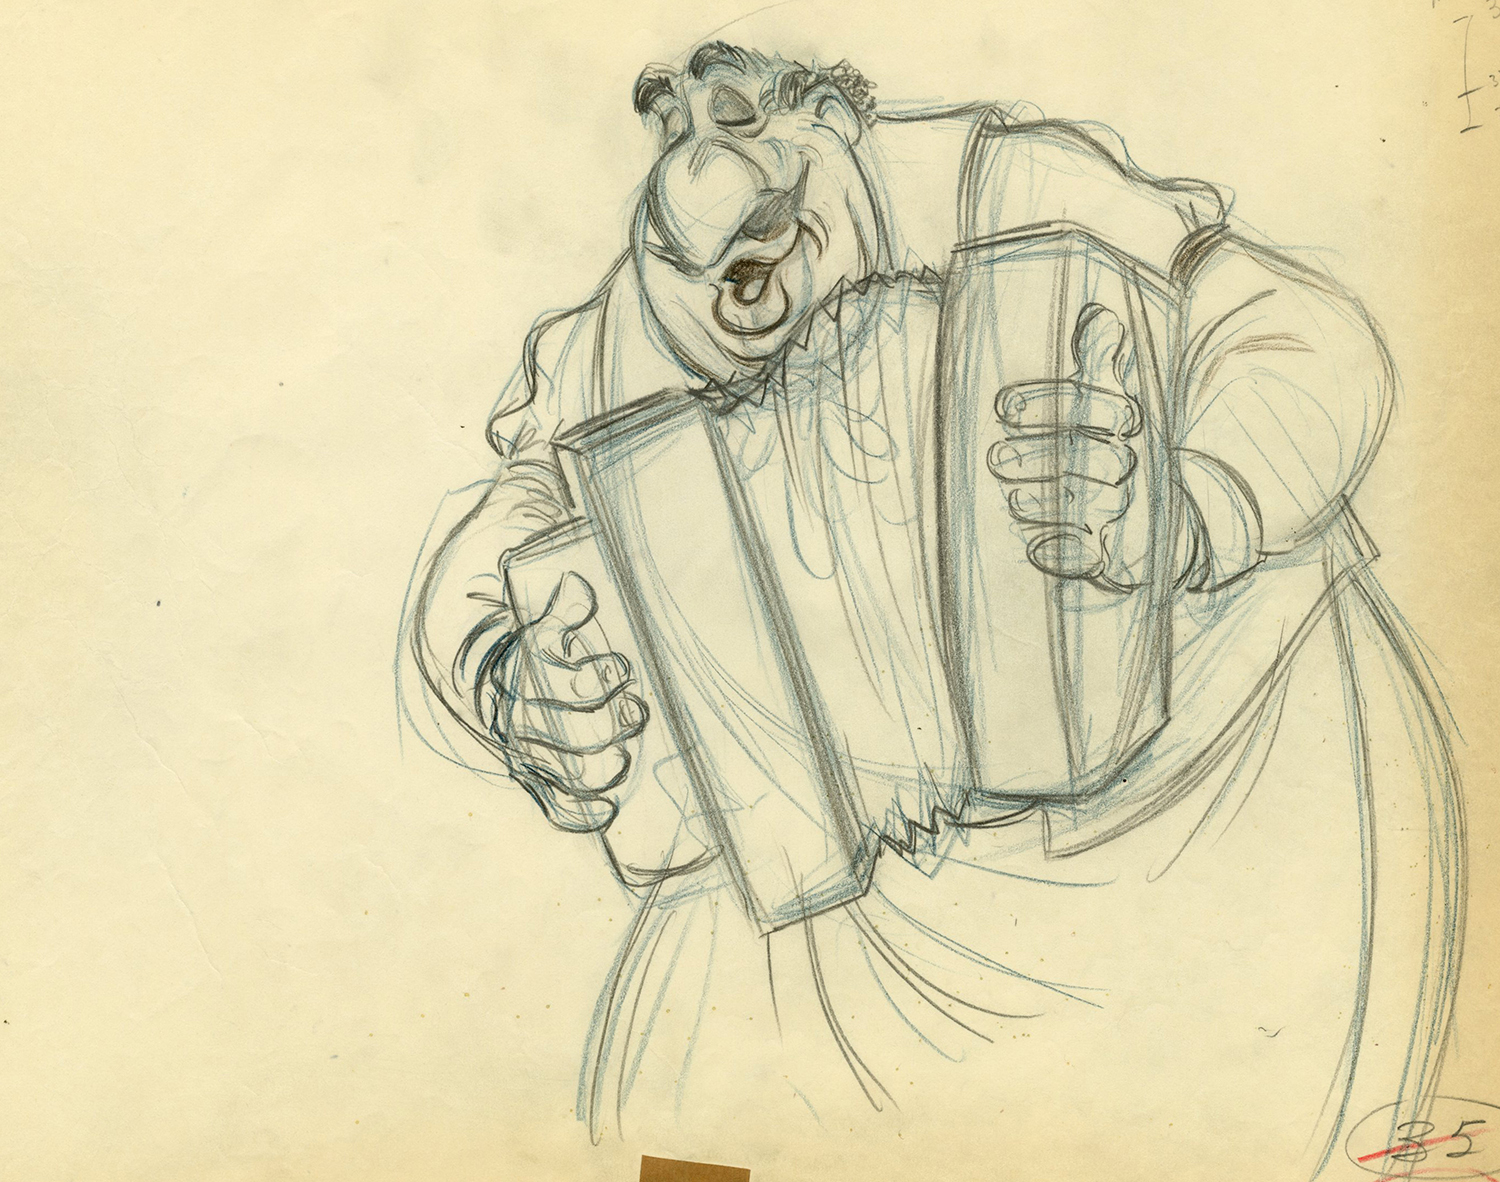 Lady And The Tramp Production Drawing Id Julyladytramp5199 Van Eaton Galleries